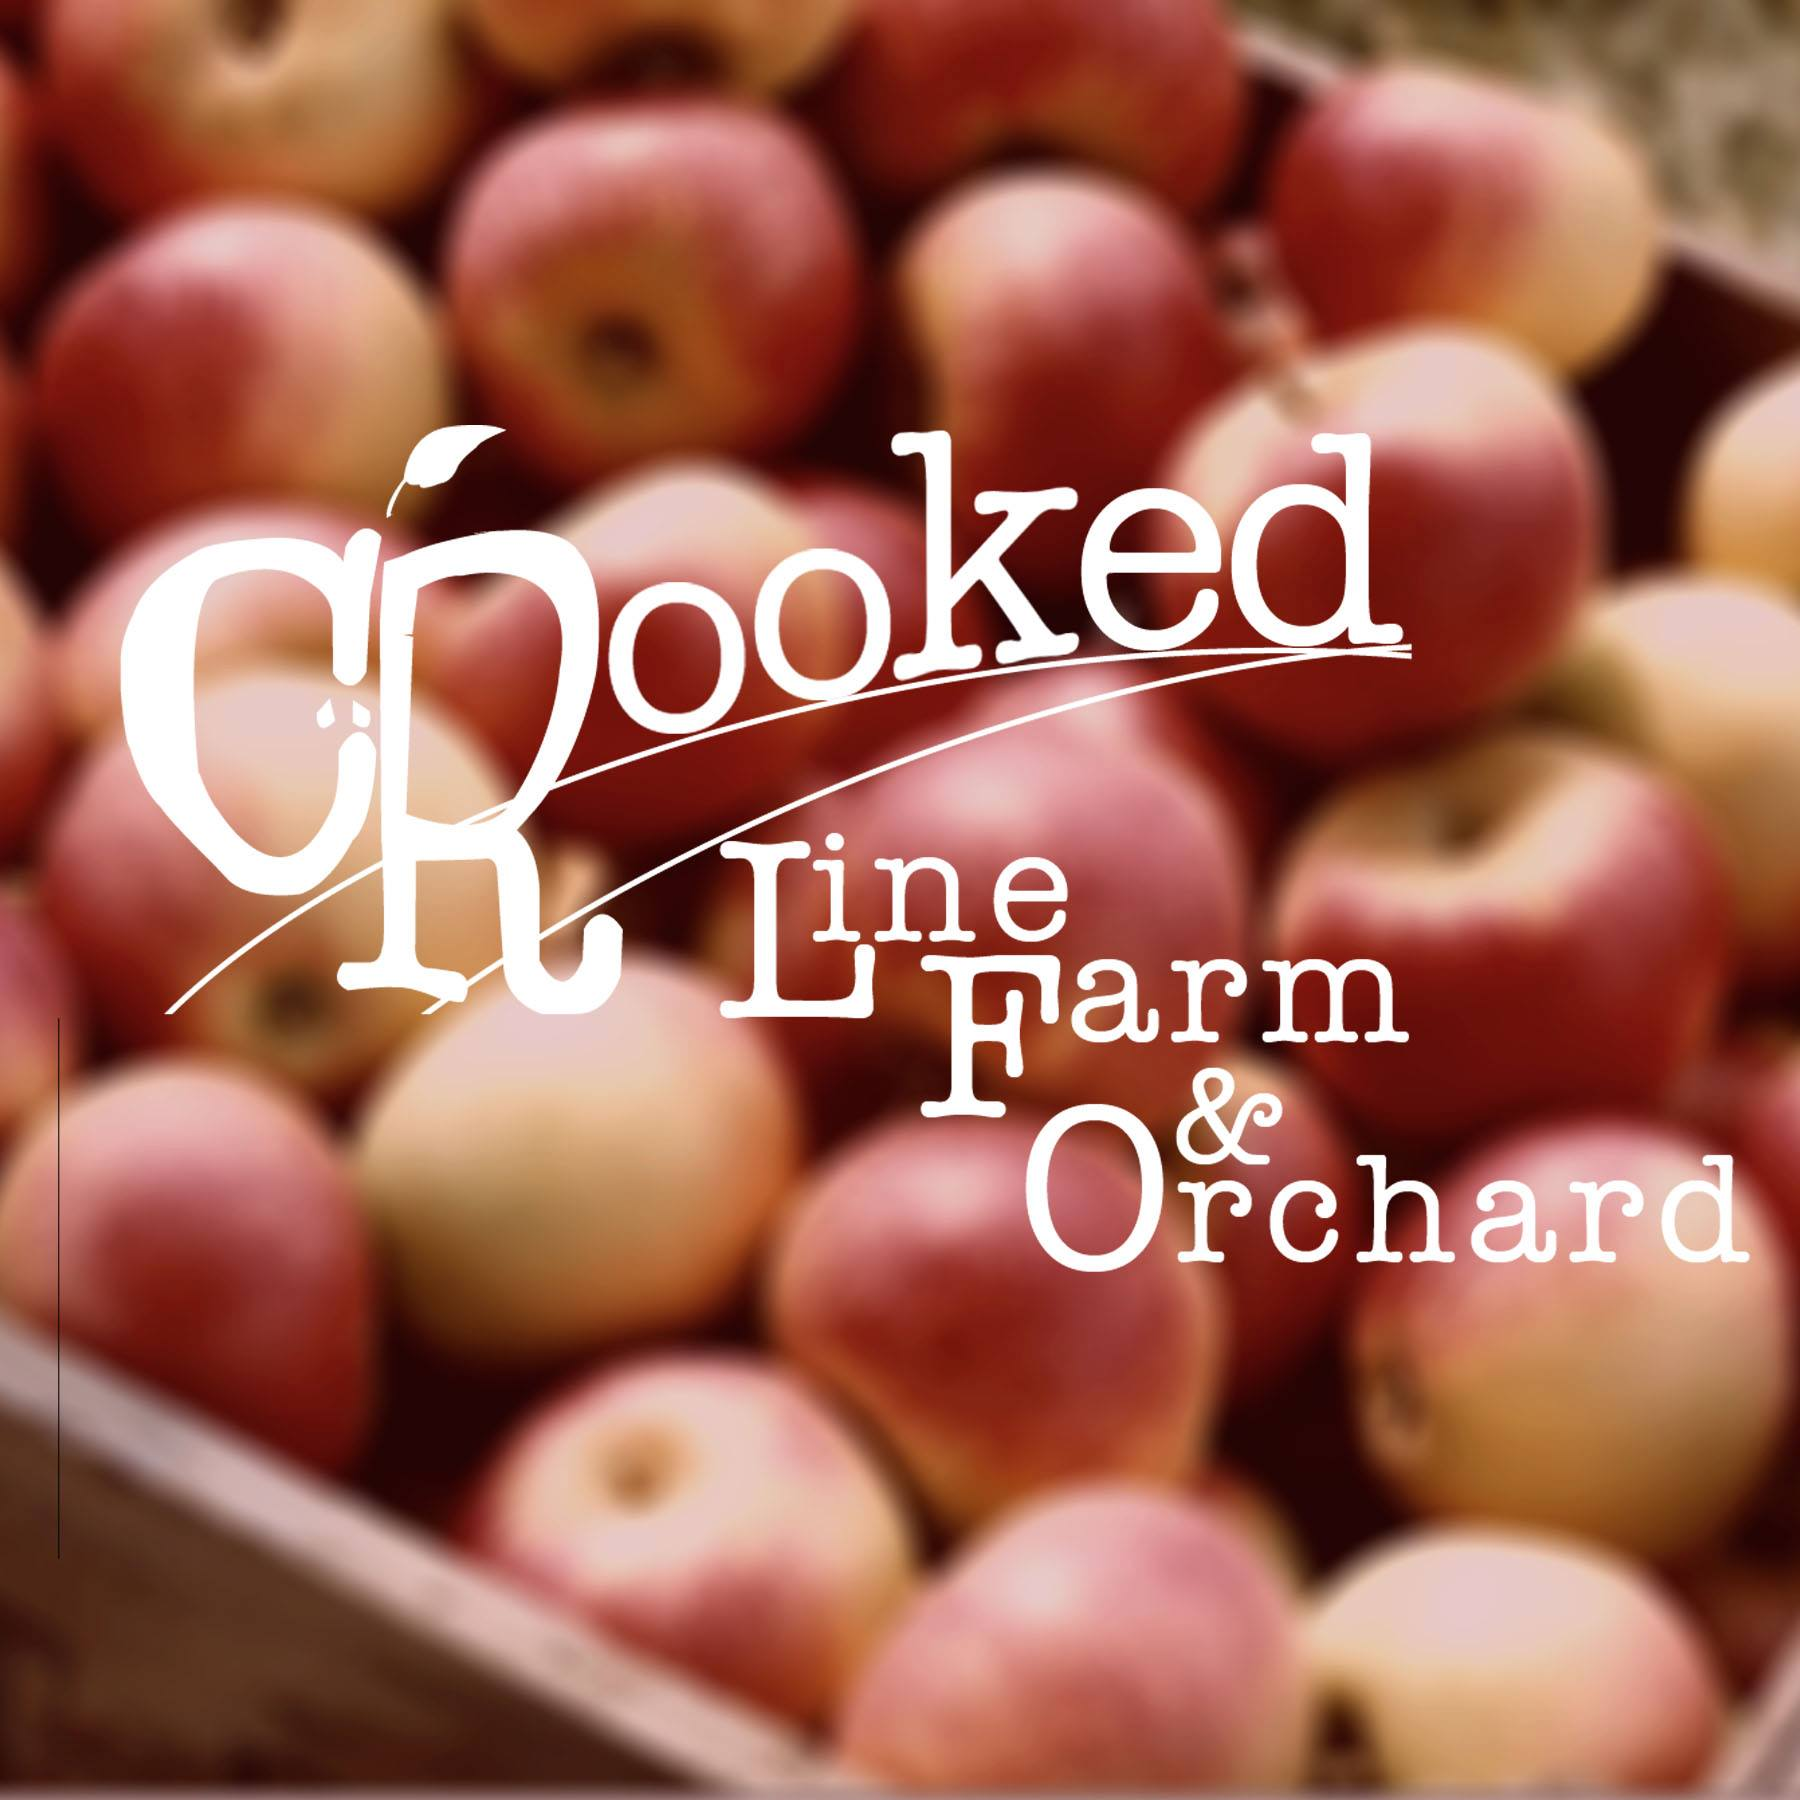 Crooked Line Farm and Orchard